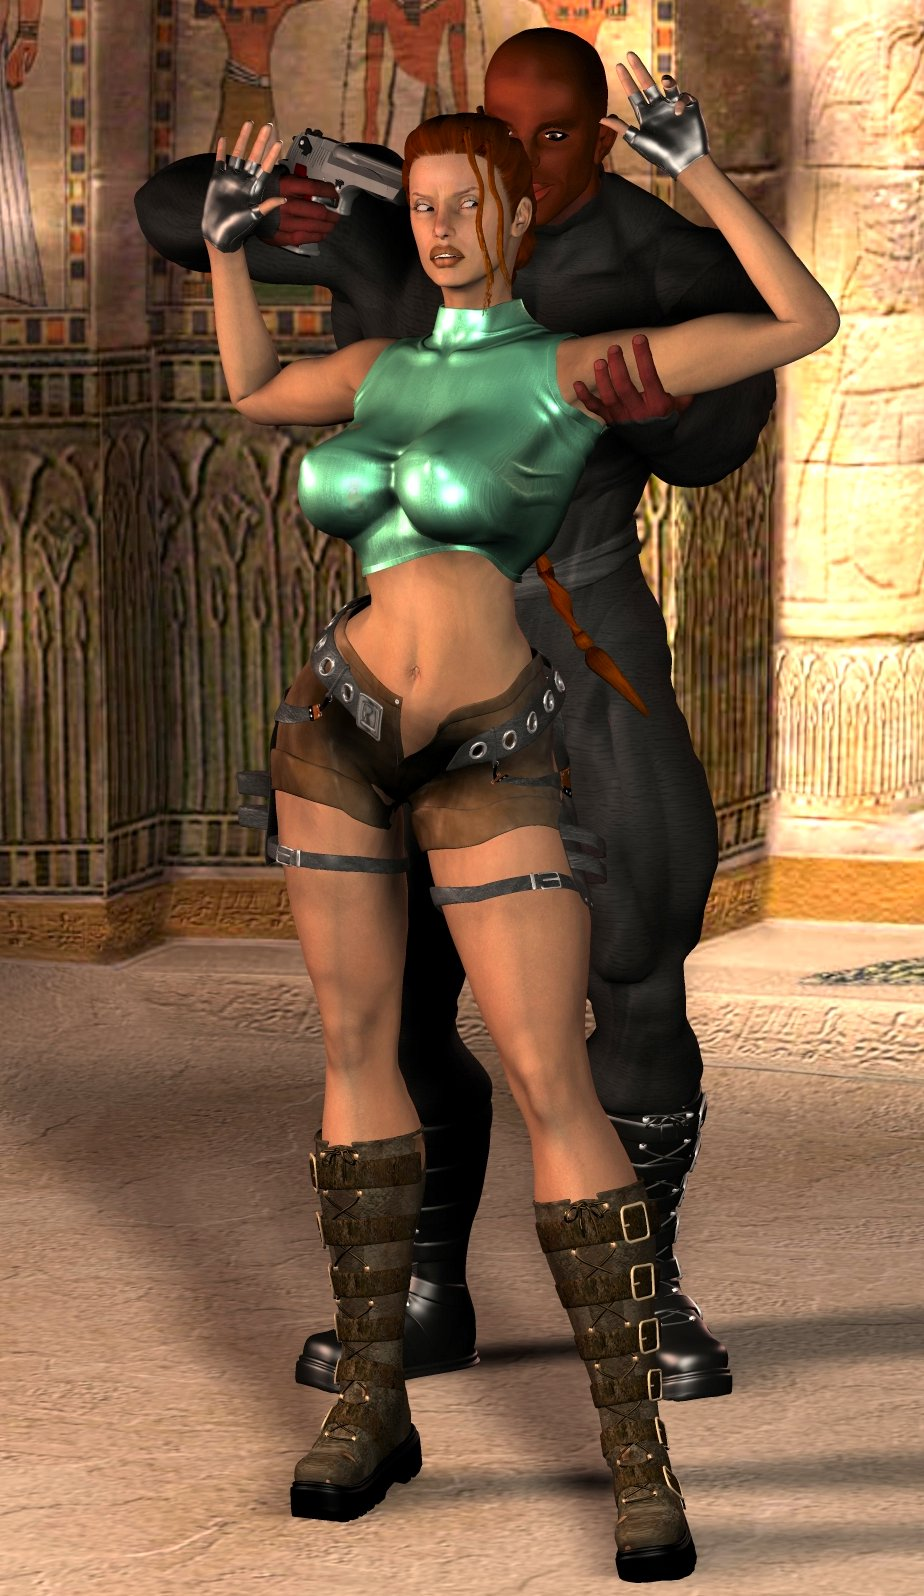 Lara croft aduls fuck fucked photos